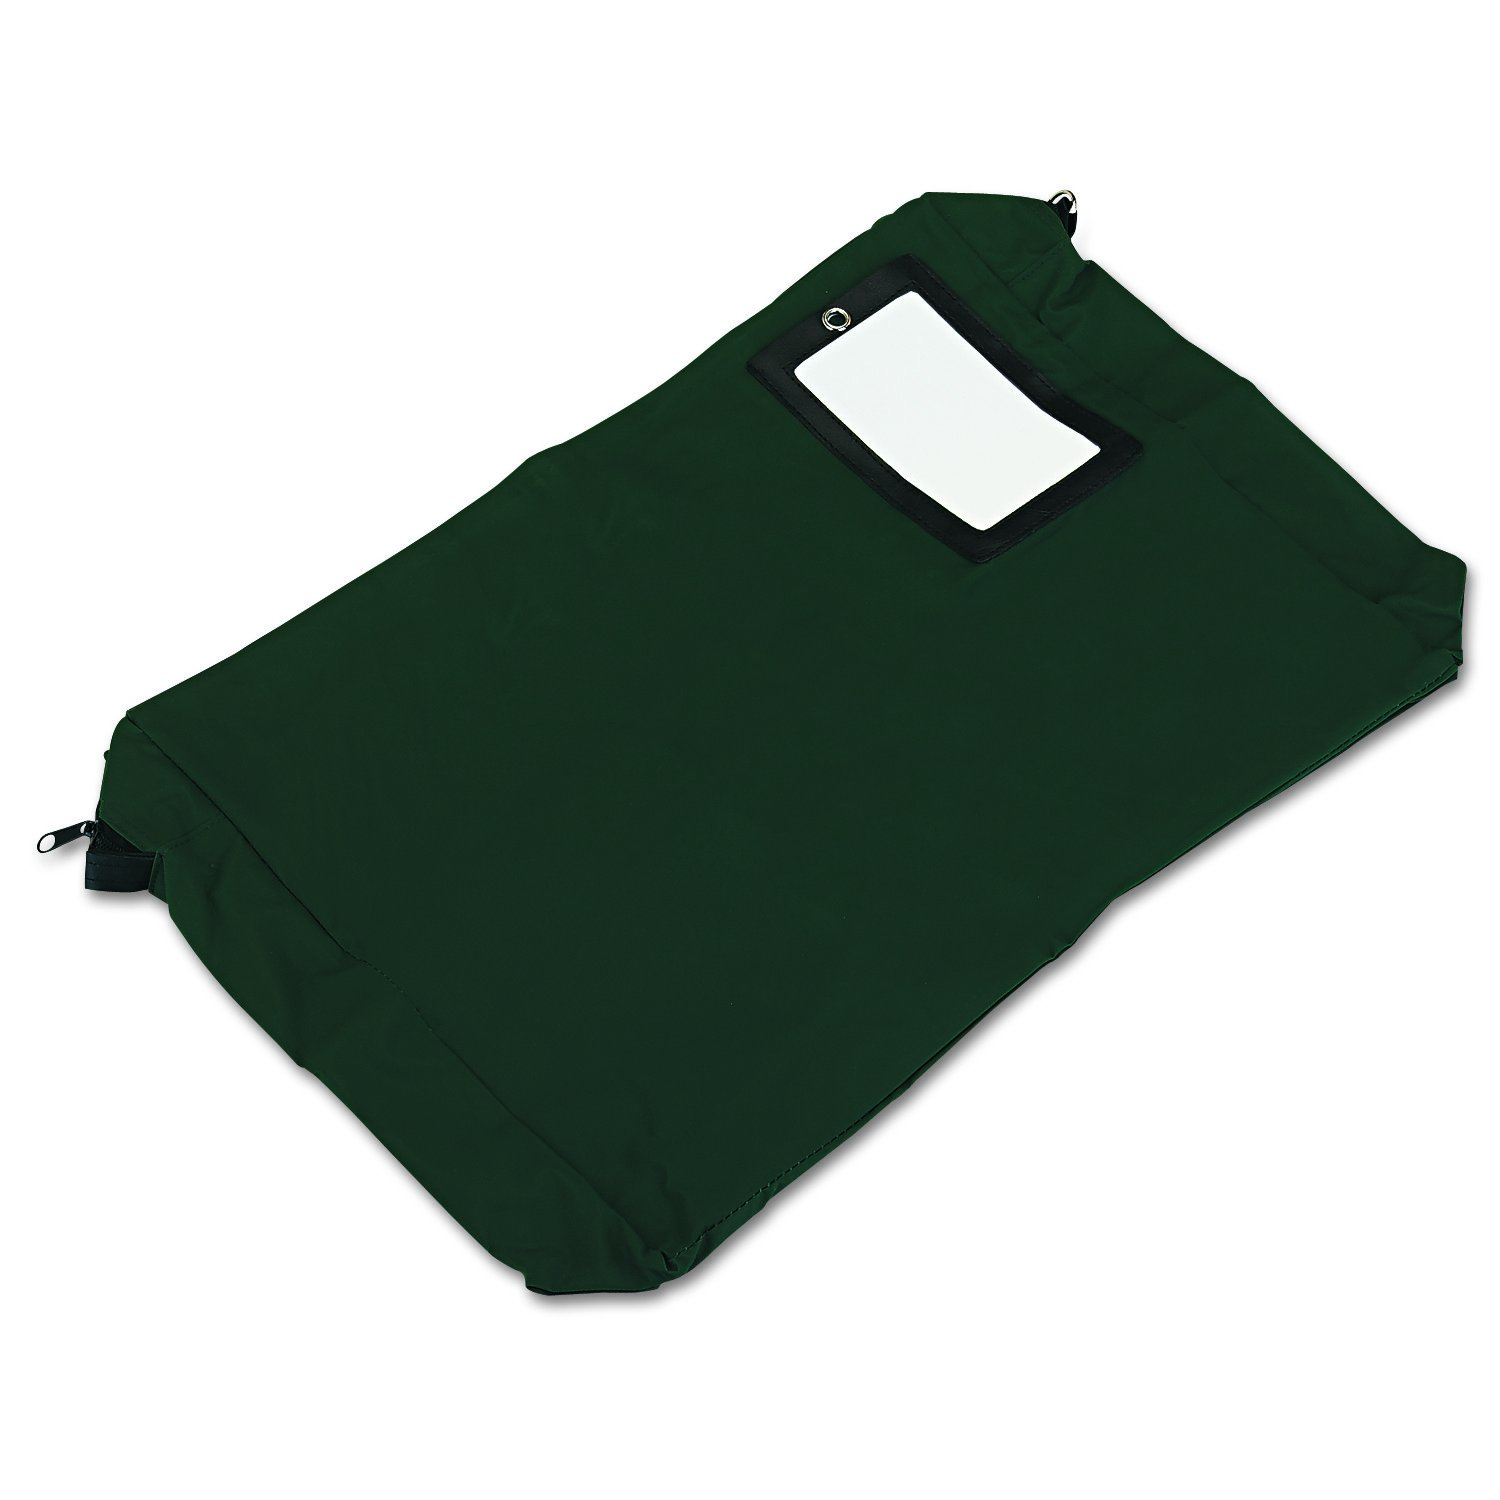 PM Company SecurIT Expandable, Reusable Transit Sack with ID Window, 18 x 14 x 4 Inches, Green, 1/Carton (04647)